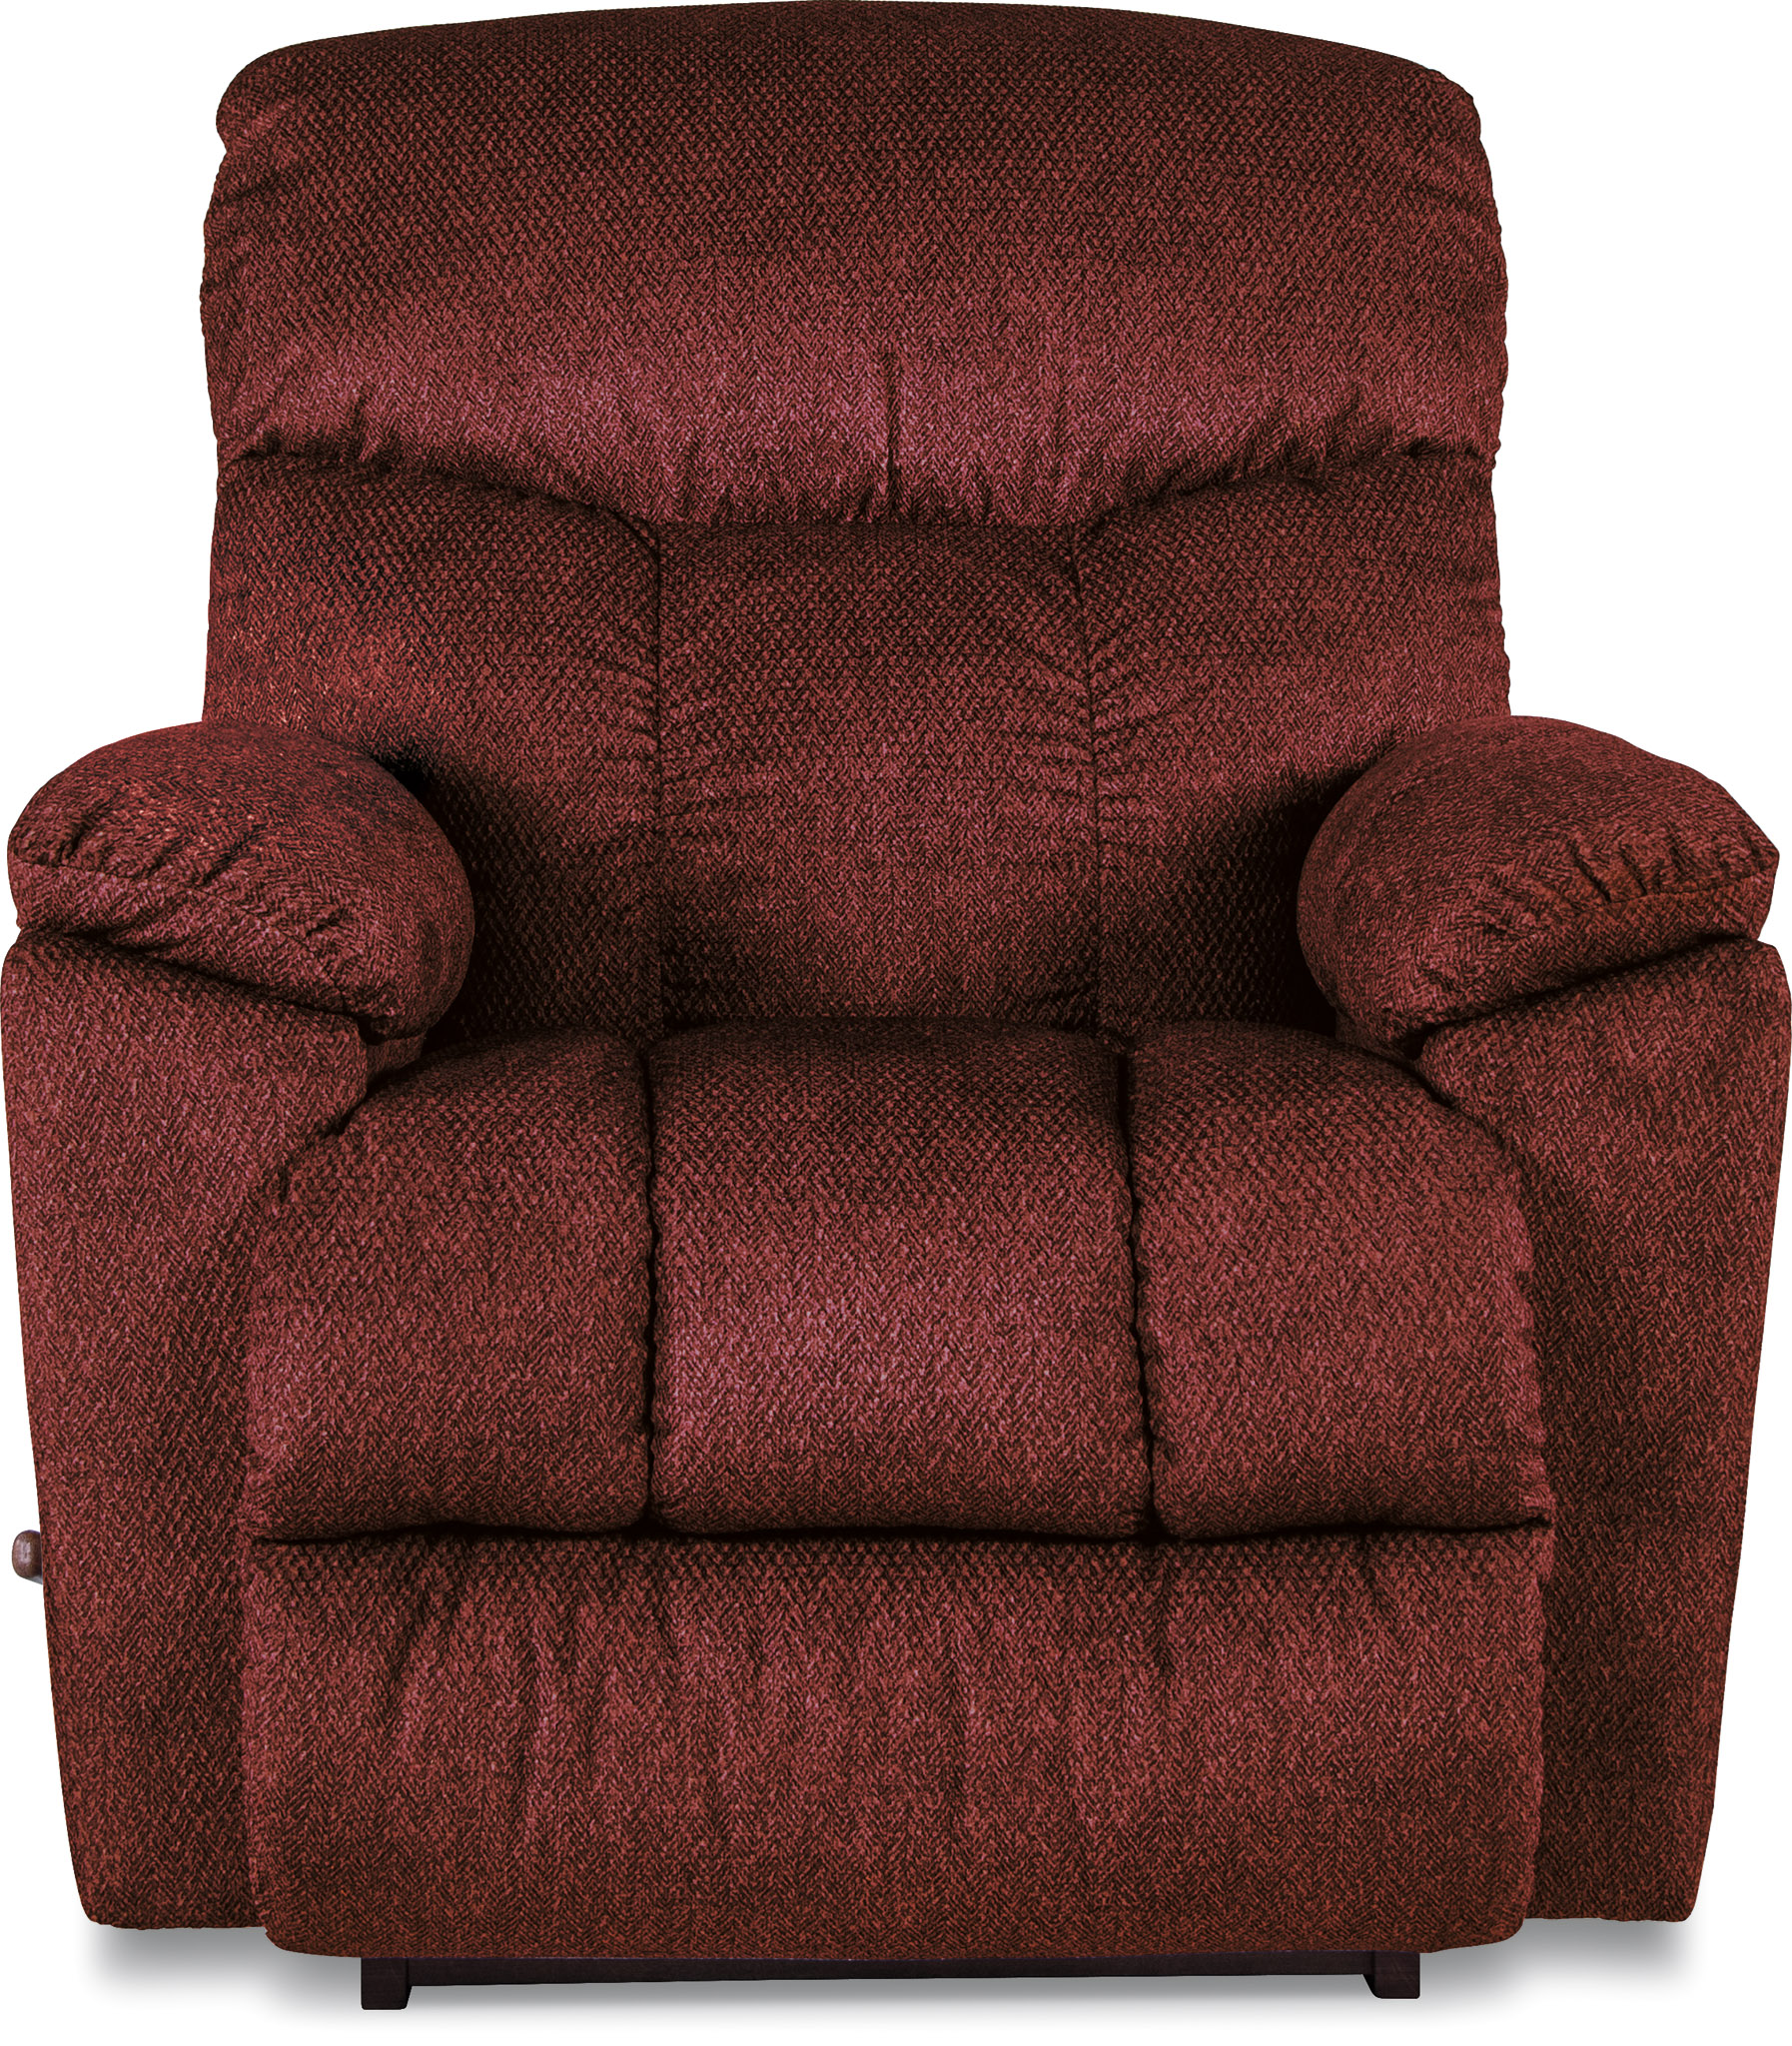 Lazboy Morrison Rocker Recliner Johnson Furniture